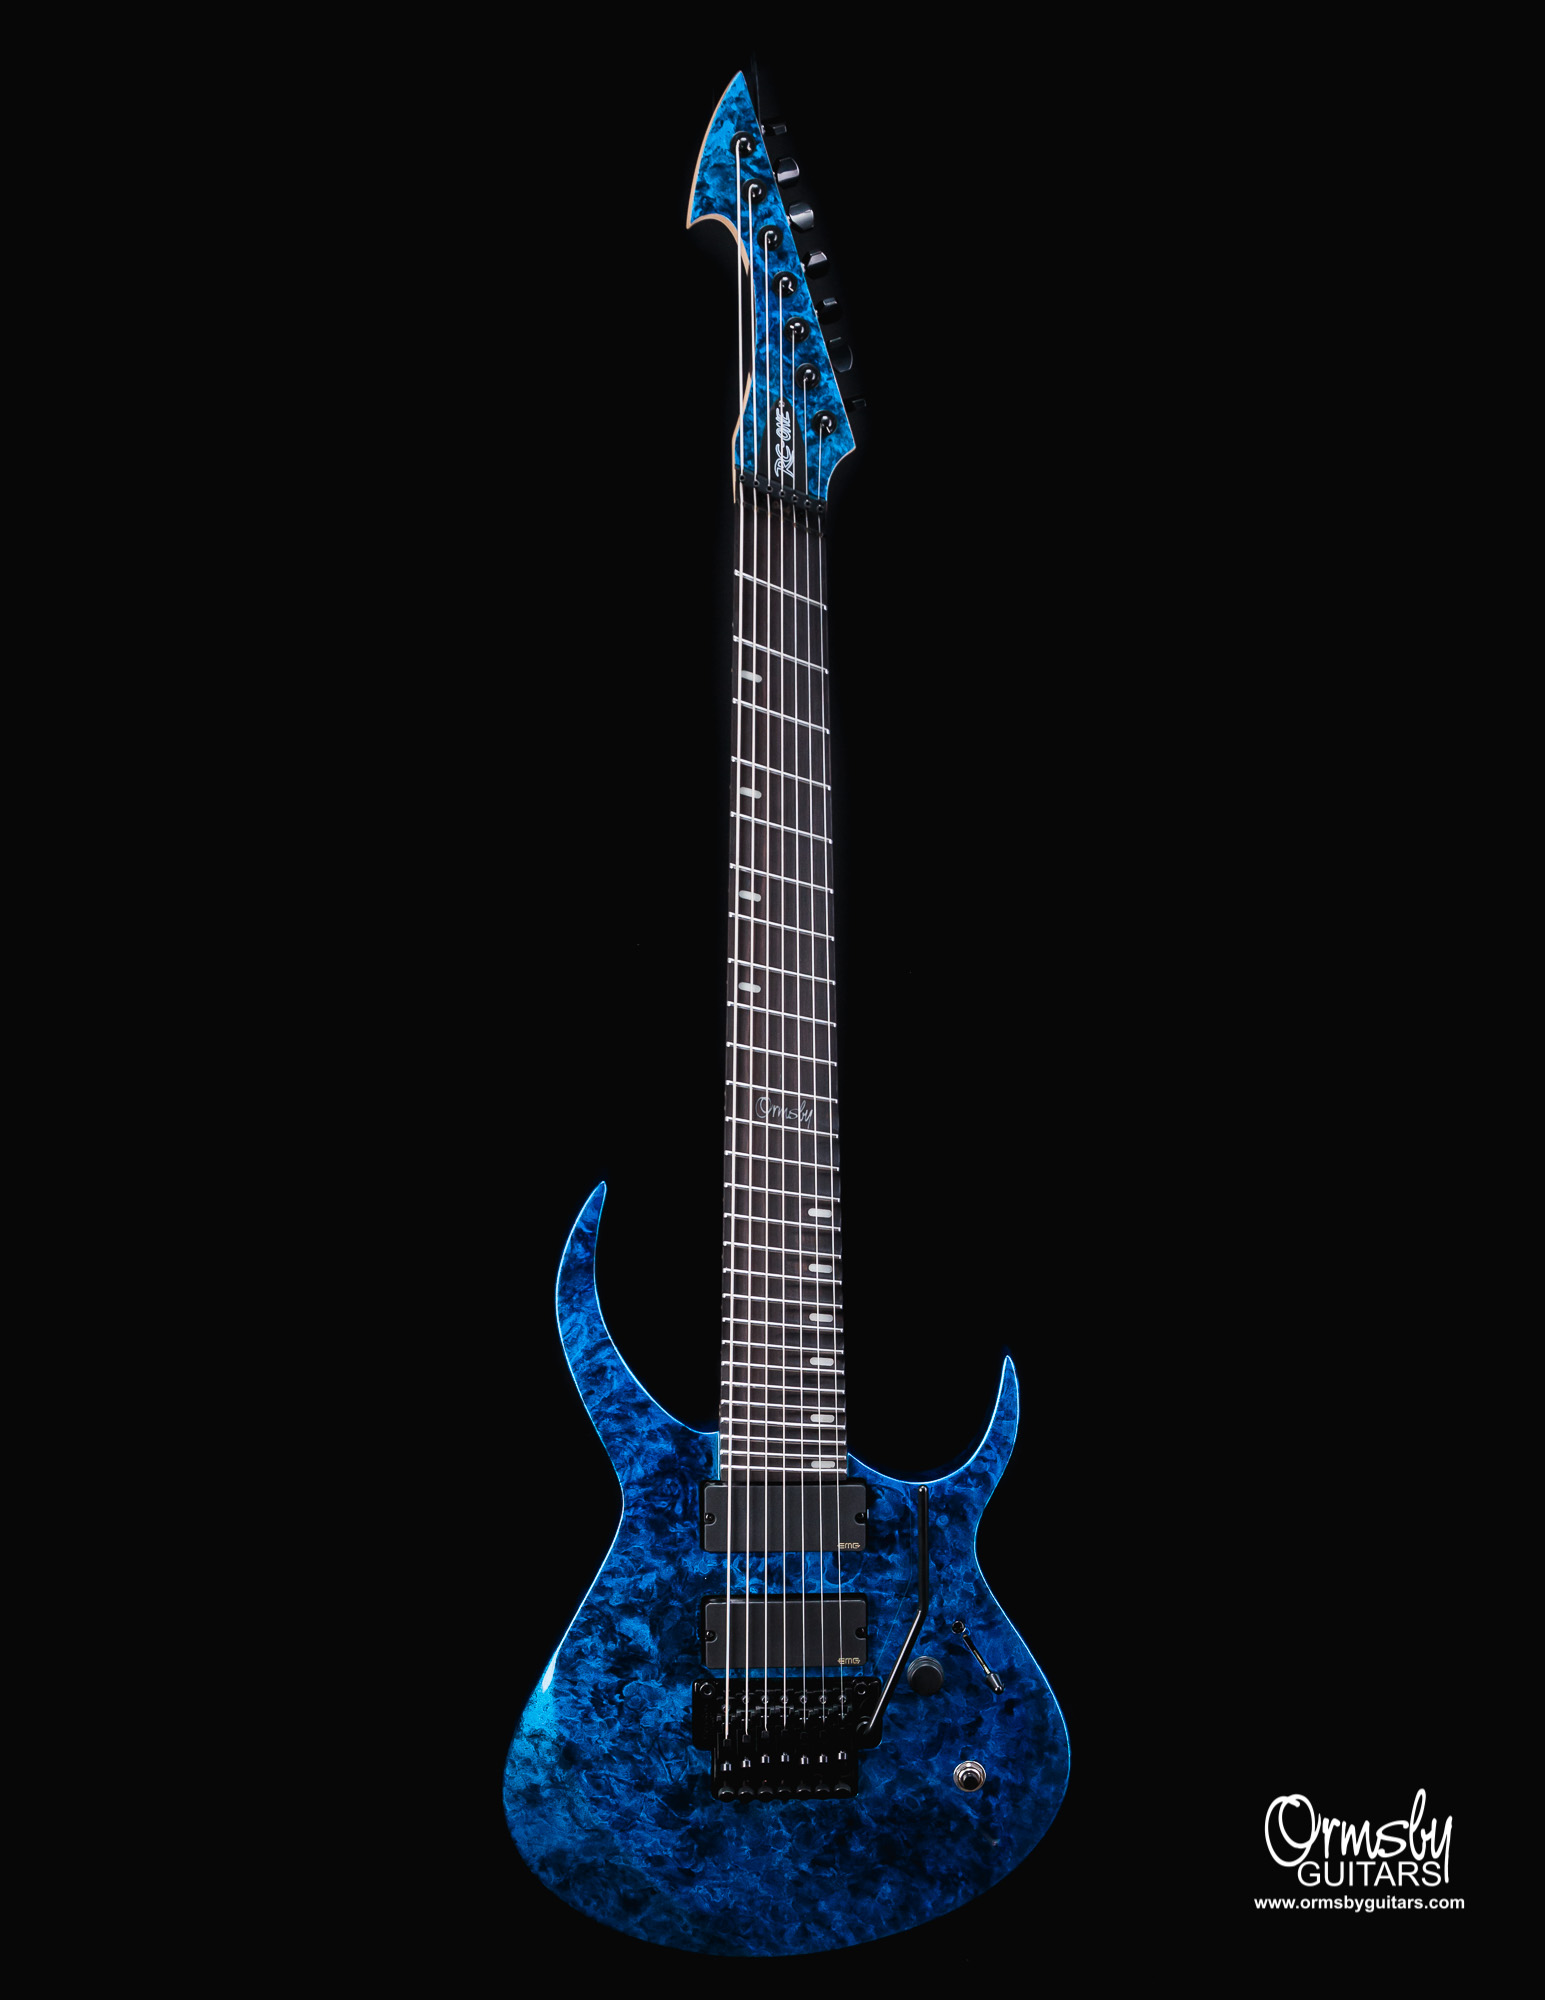 Ormsby Guitars Artists Rusty Cooley Signature